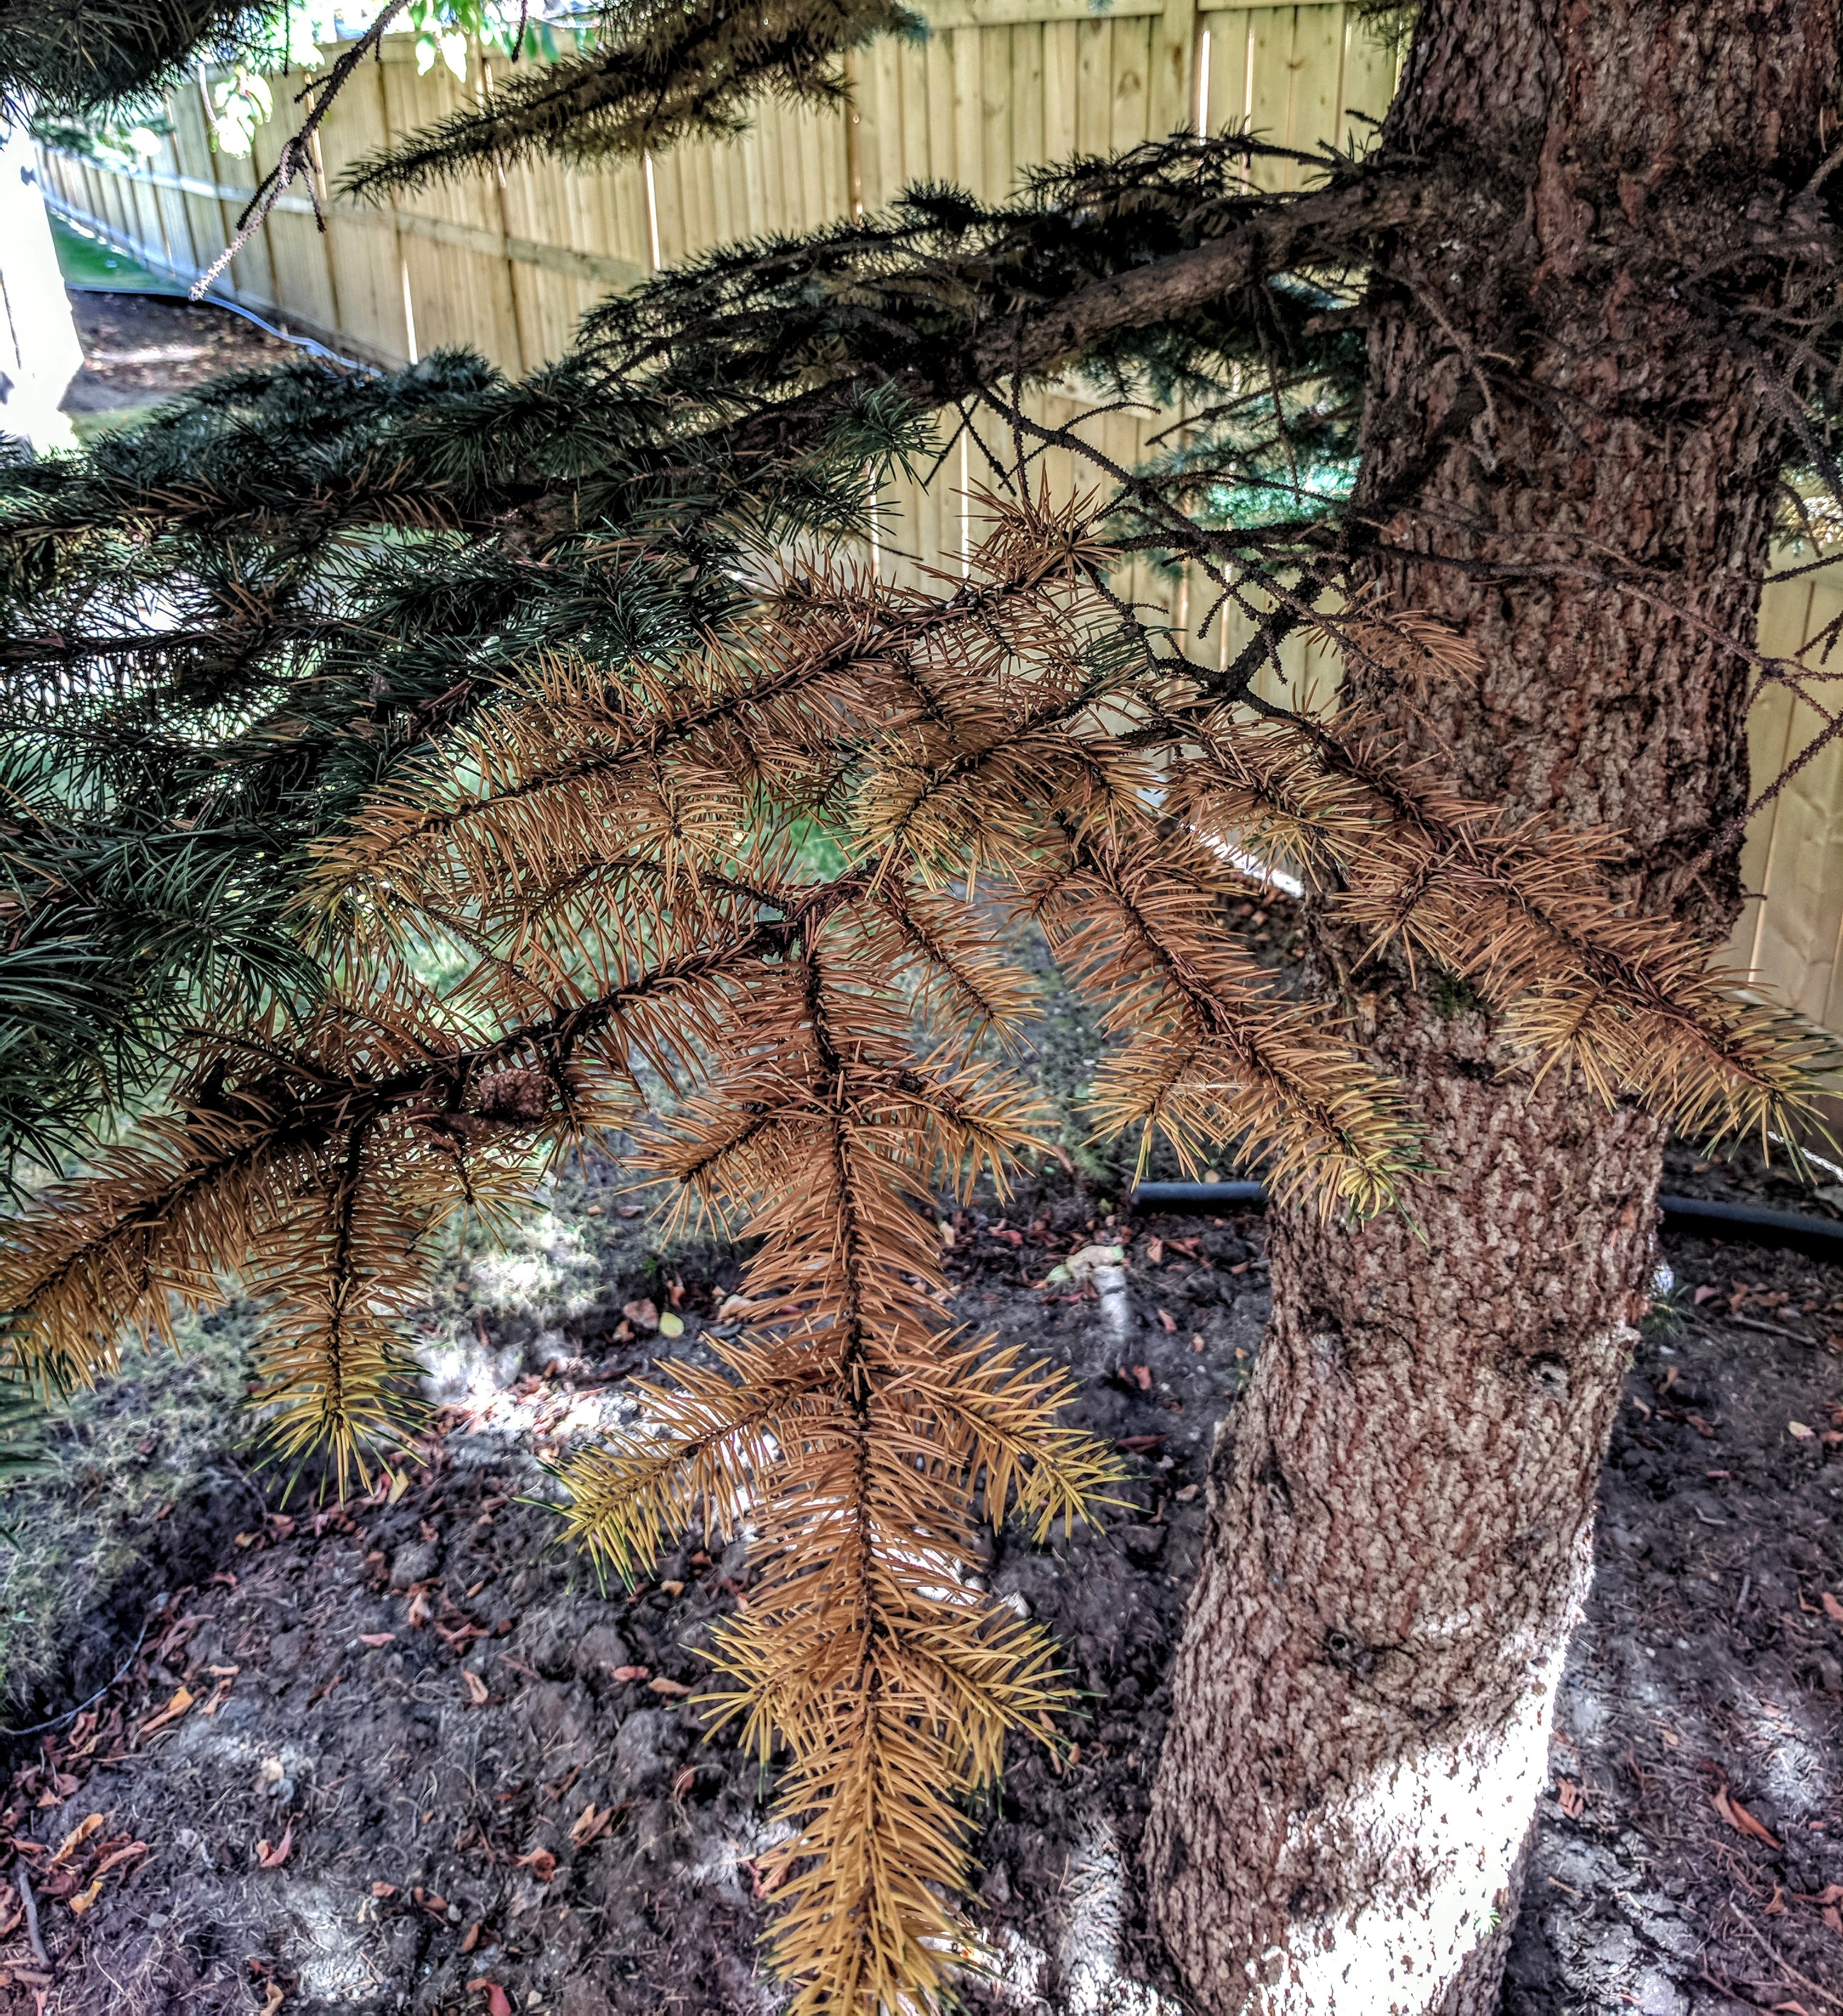 Trees Shed Last Of Their Leaves And We >> Seasonal Needle Drop Common Tree Issues Adair Tree Care Calgary